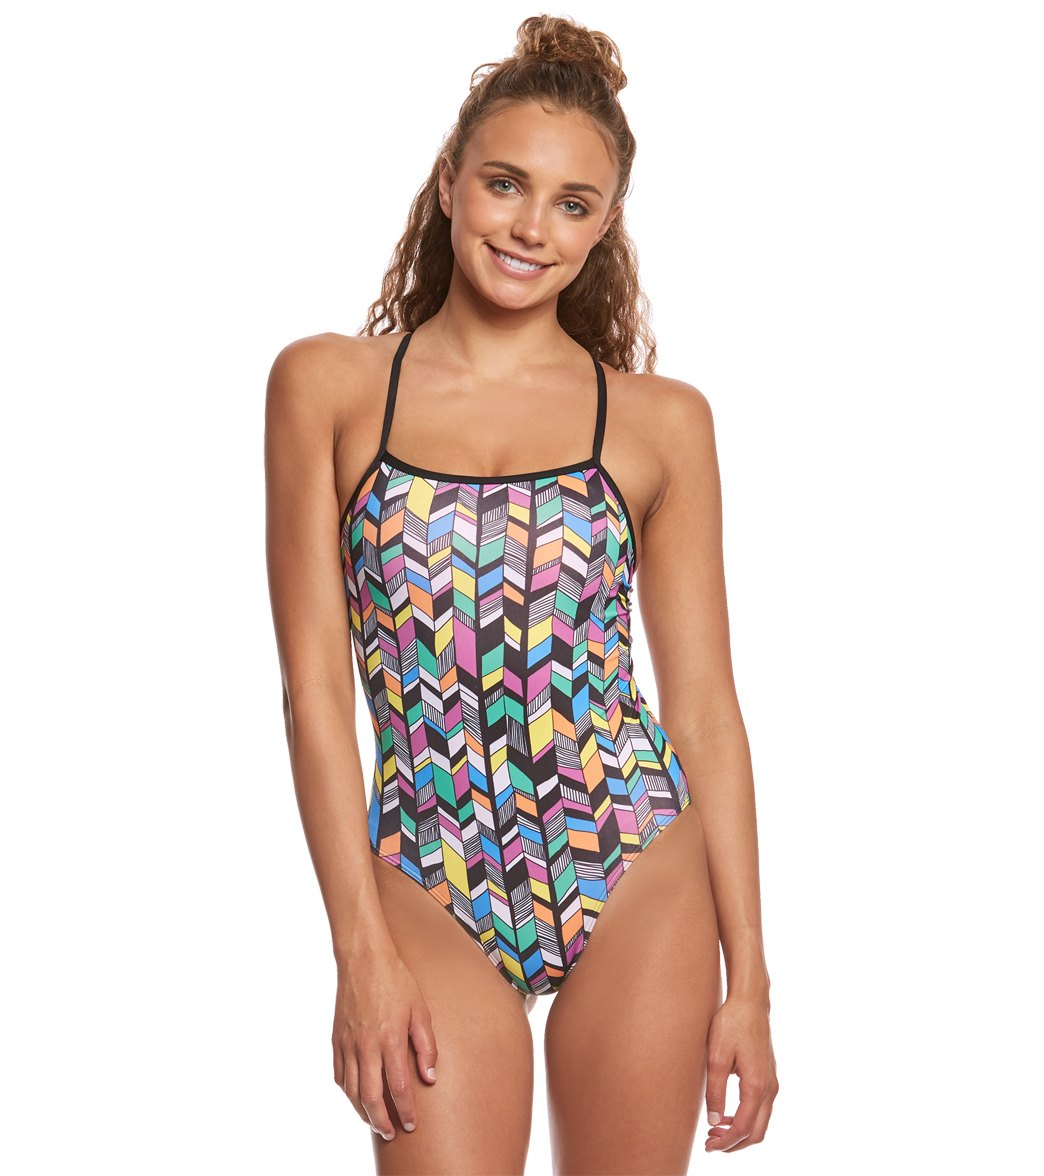 ab6f65863a177 Amanzi Women s Trellis One Piece Swimsuit at SwimOutlet.com - Free Shipping